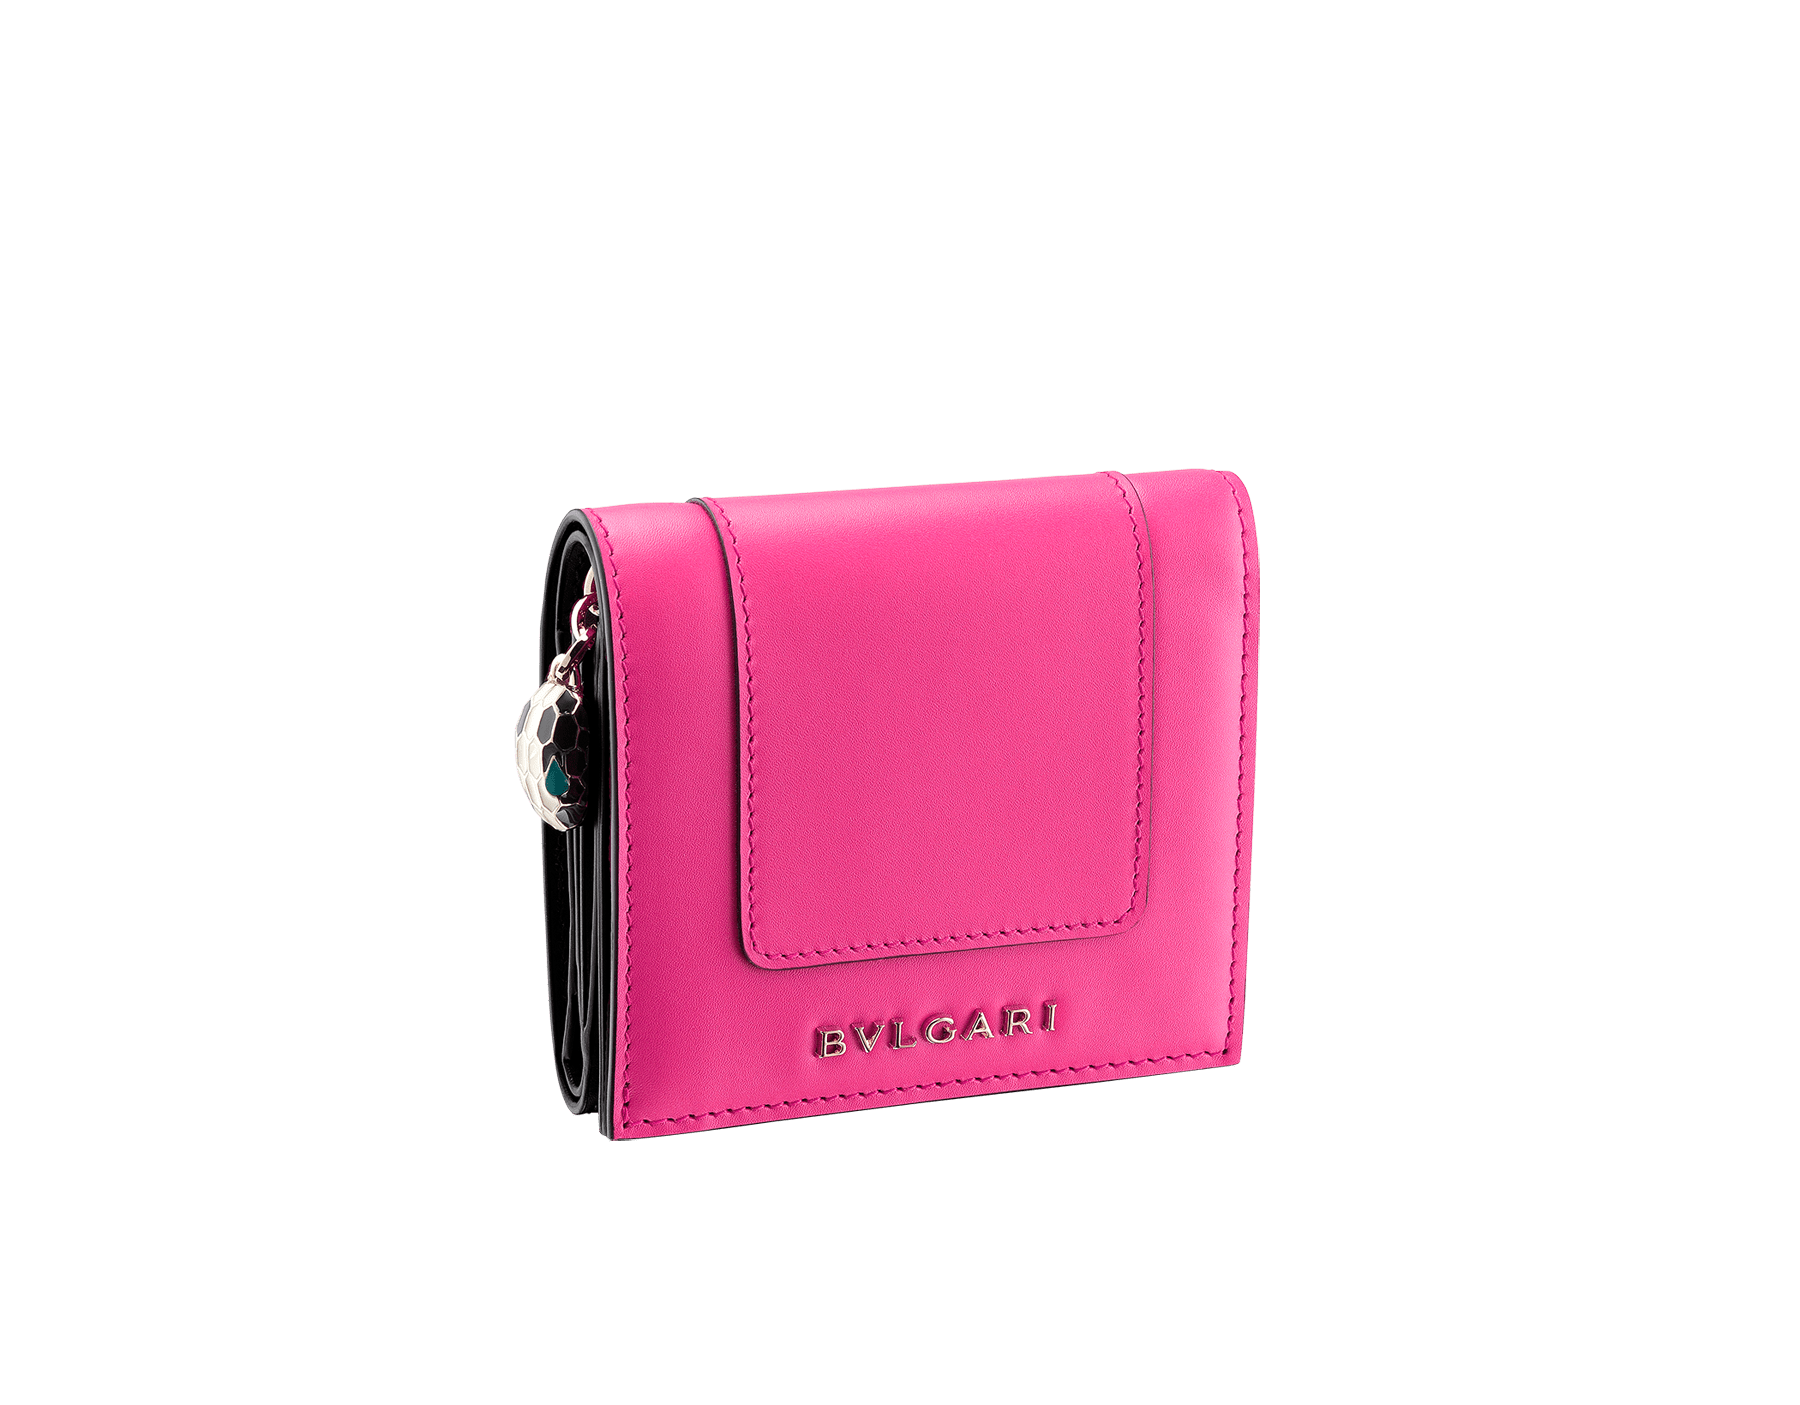 Serpenti Forever super compact wallet in roman garnet and pink spinel calf leather. Iconic snakehead zip puller in black and white enamel, with green malachite enamel eyes. SEA-SUPERCOMPACT-CLa image 1